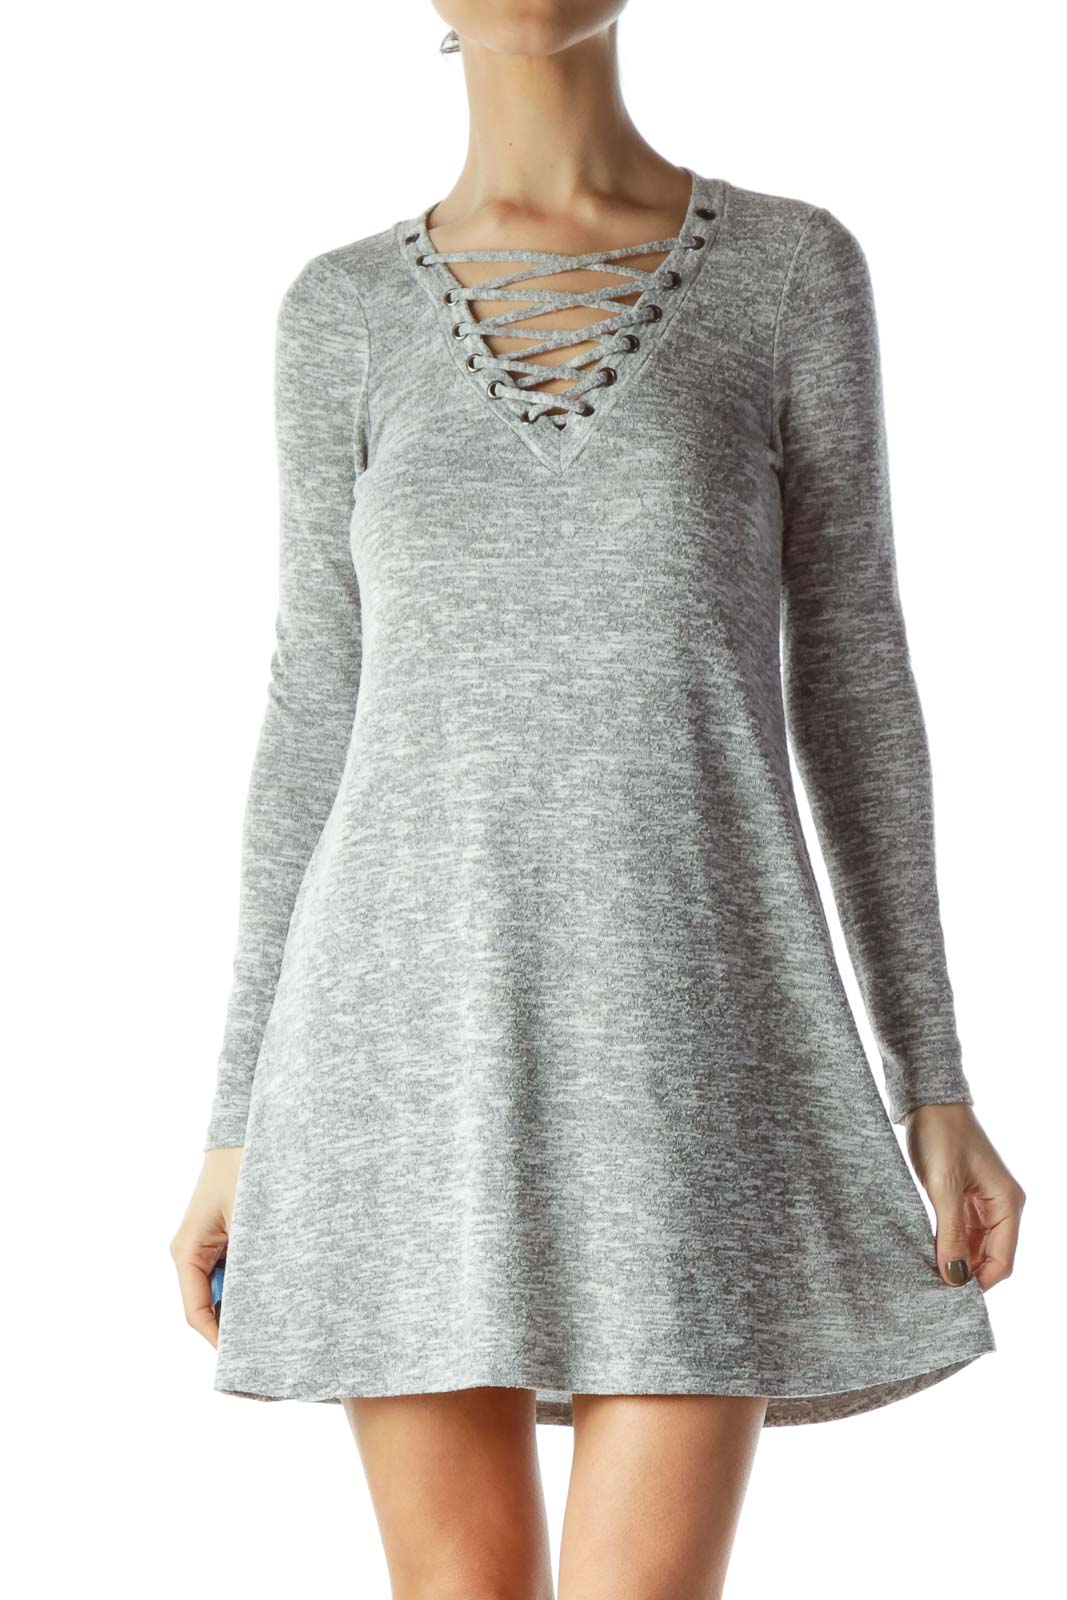 Gray Jersey-Knit Dress with Tie Detail Front